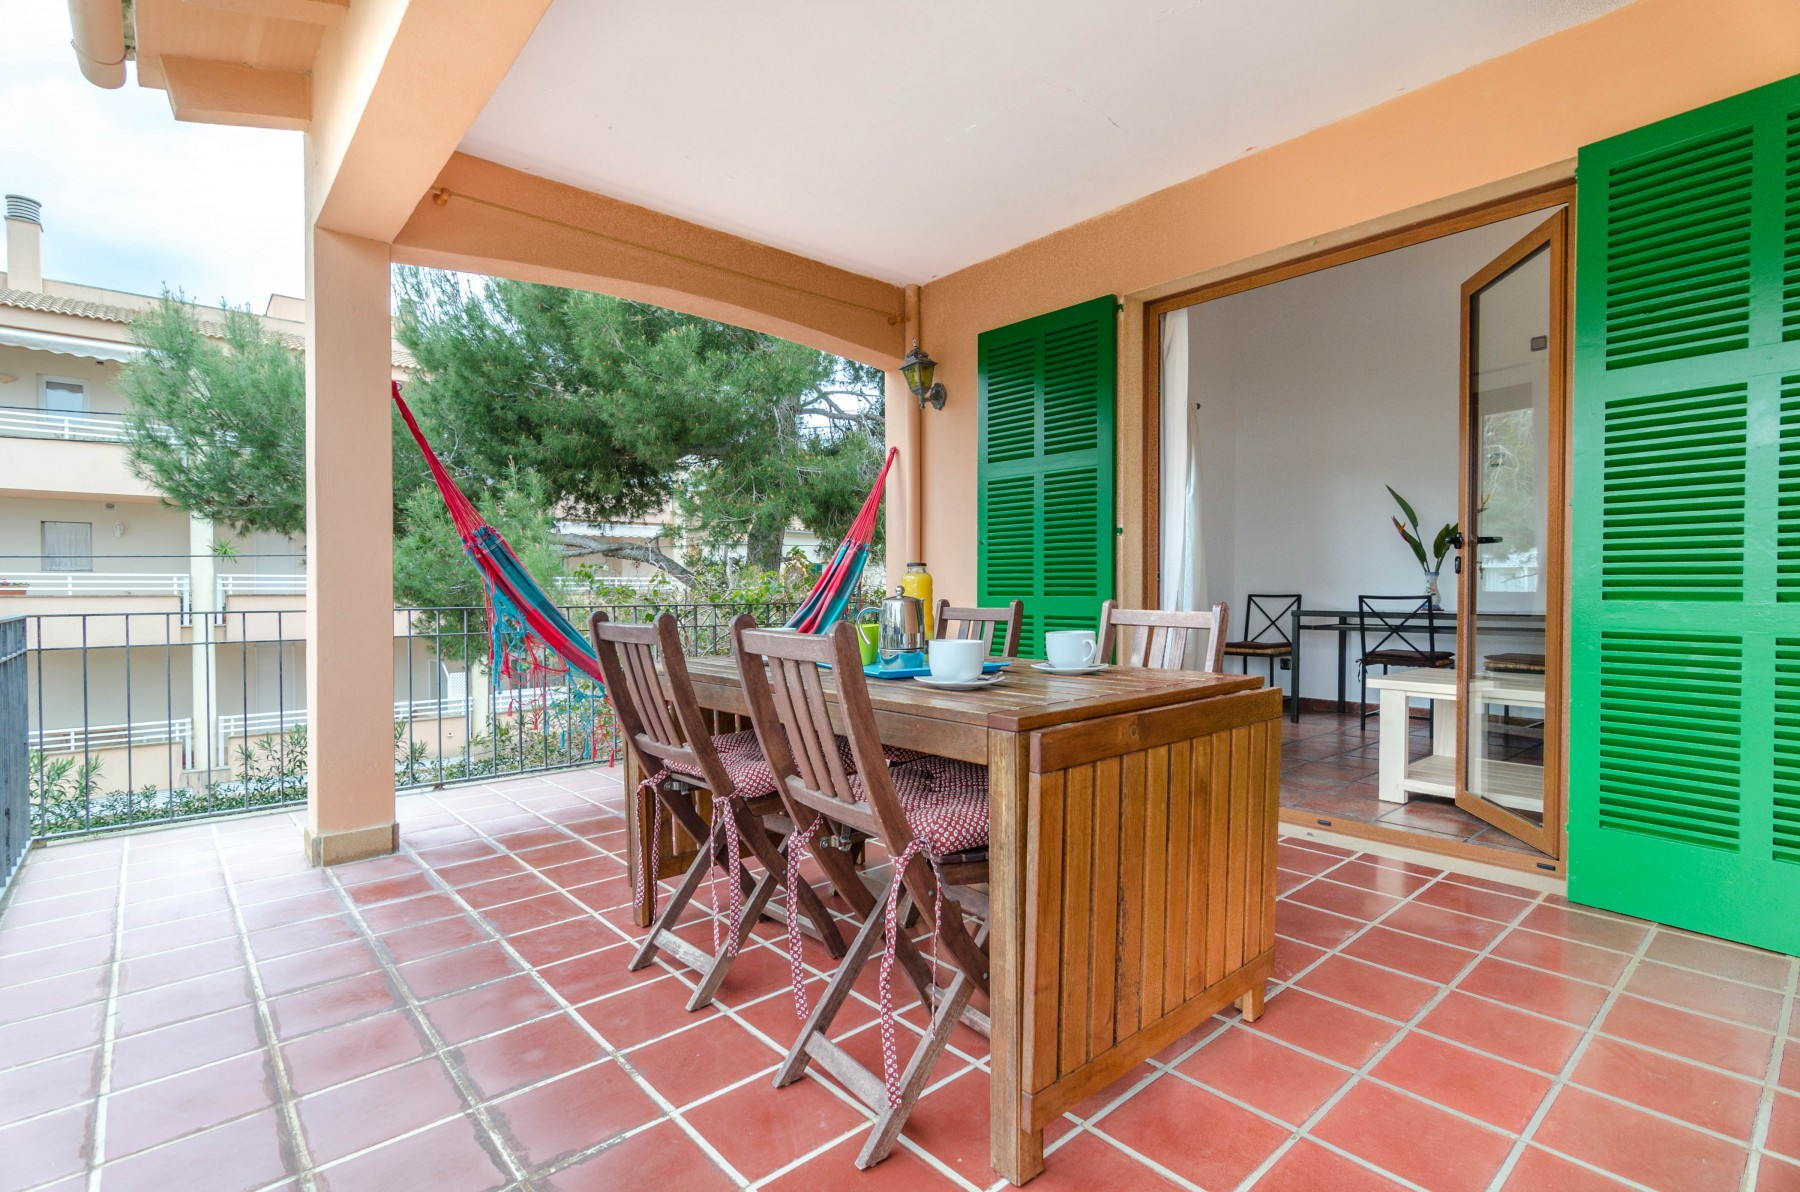 ESPART - 1481 for 4 guests in Ses Salines, Spain